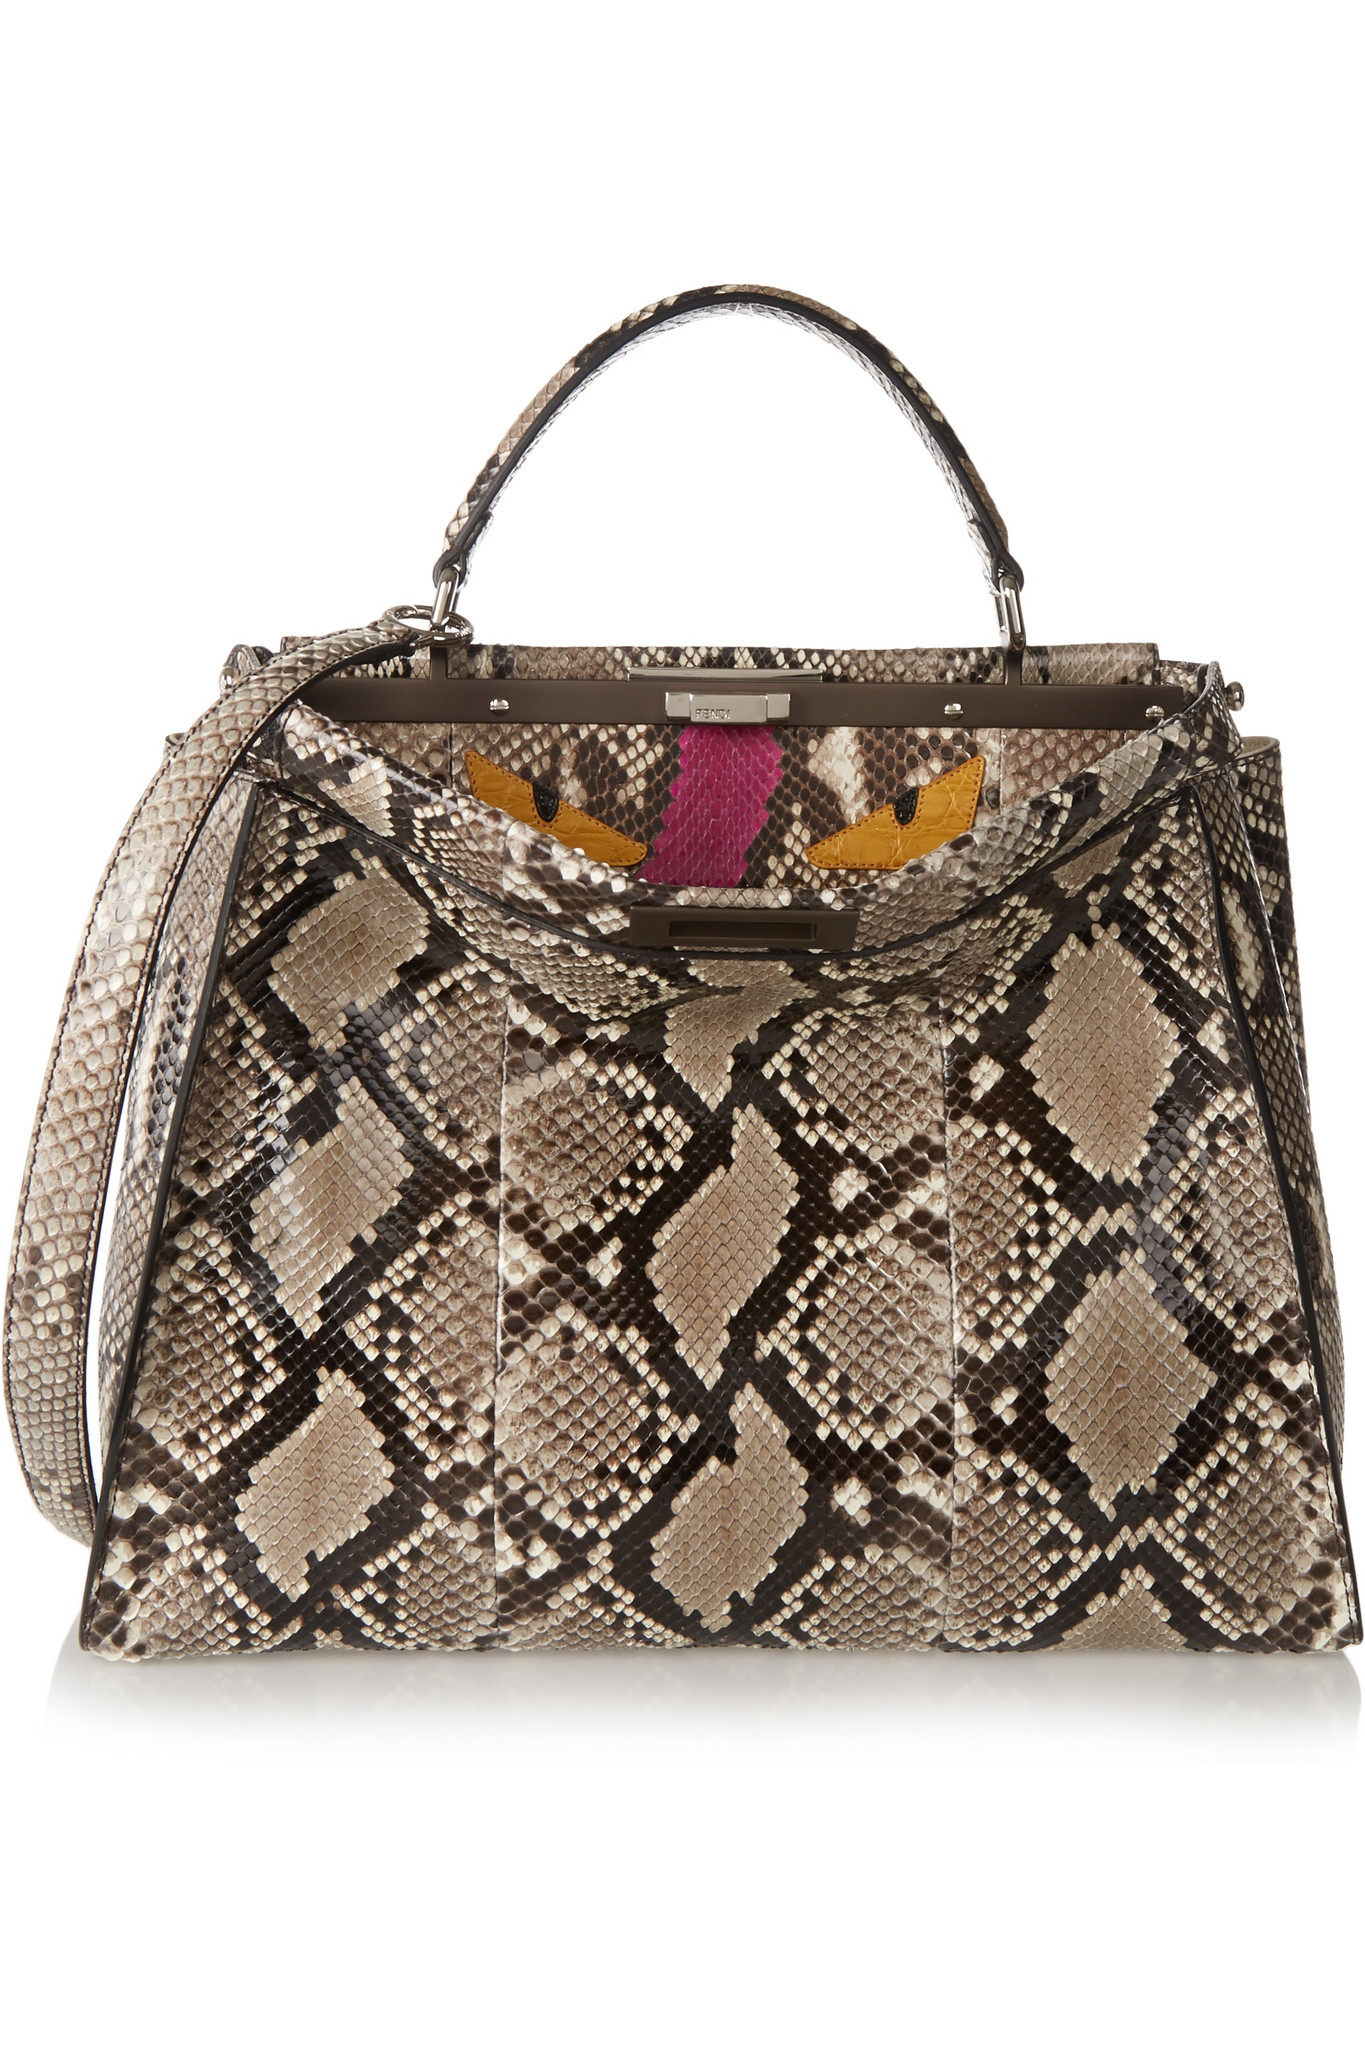 17bdd719ba Fendi Peekaboo Large Python And Crocodile Tote - Lyst